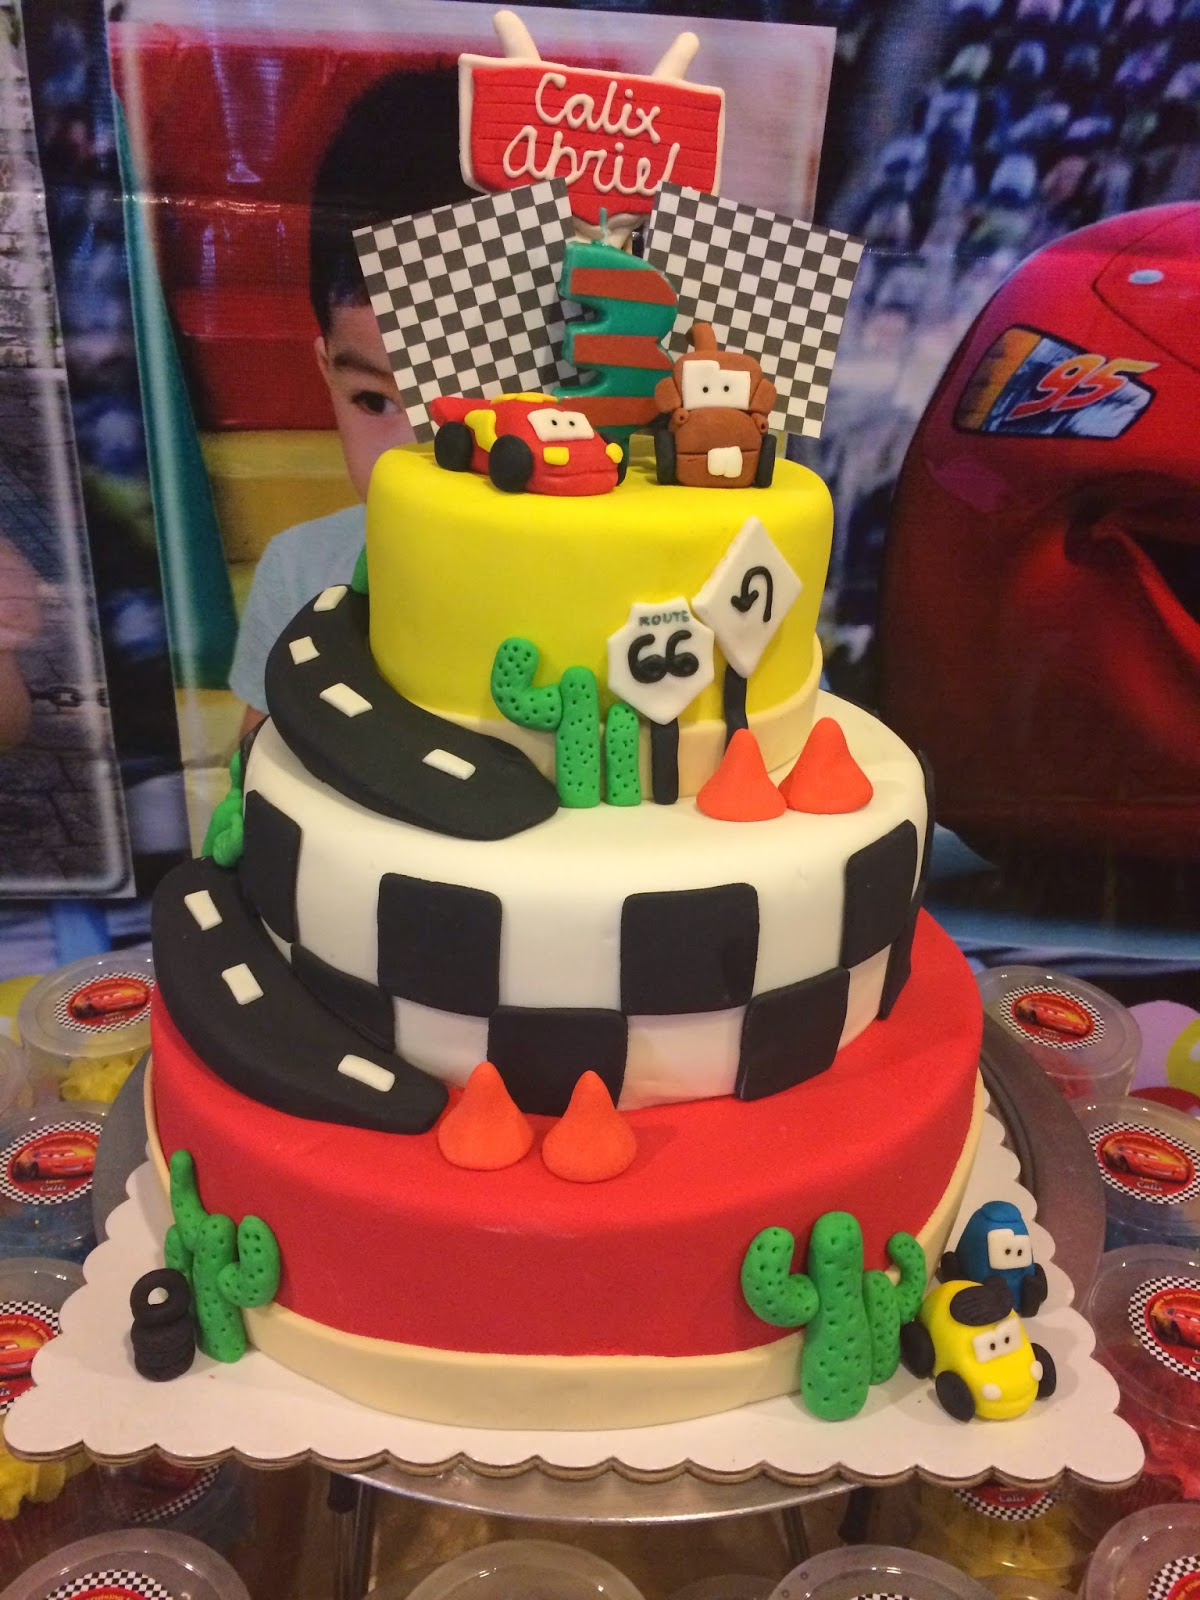 Disney Pixar Cars Cake Design : Disney Pixar Cars Themed Cake Kiddie Affairs Custom Cakes